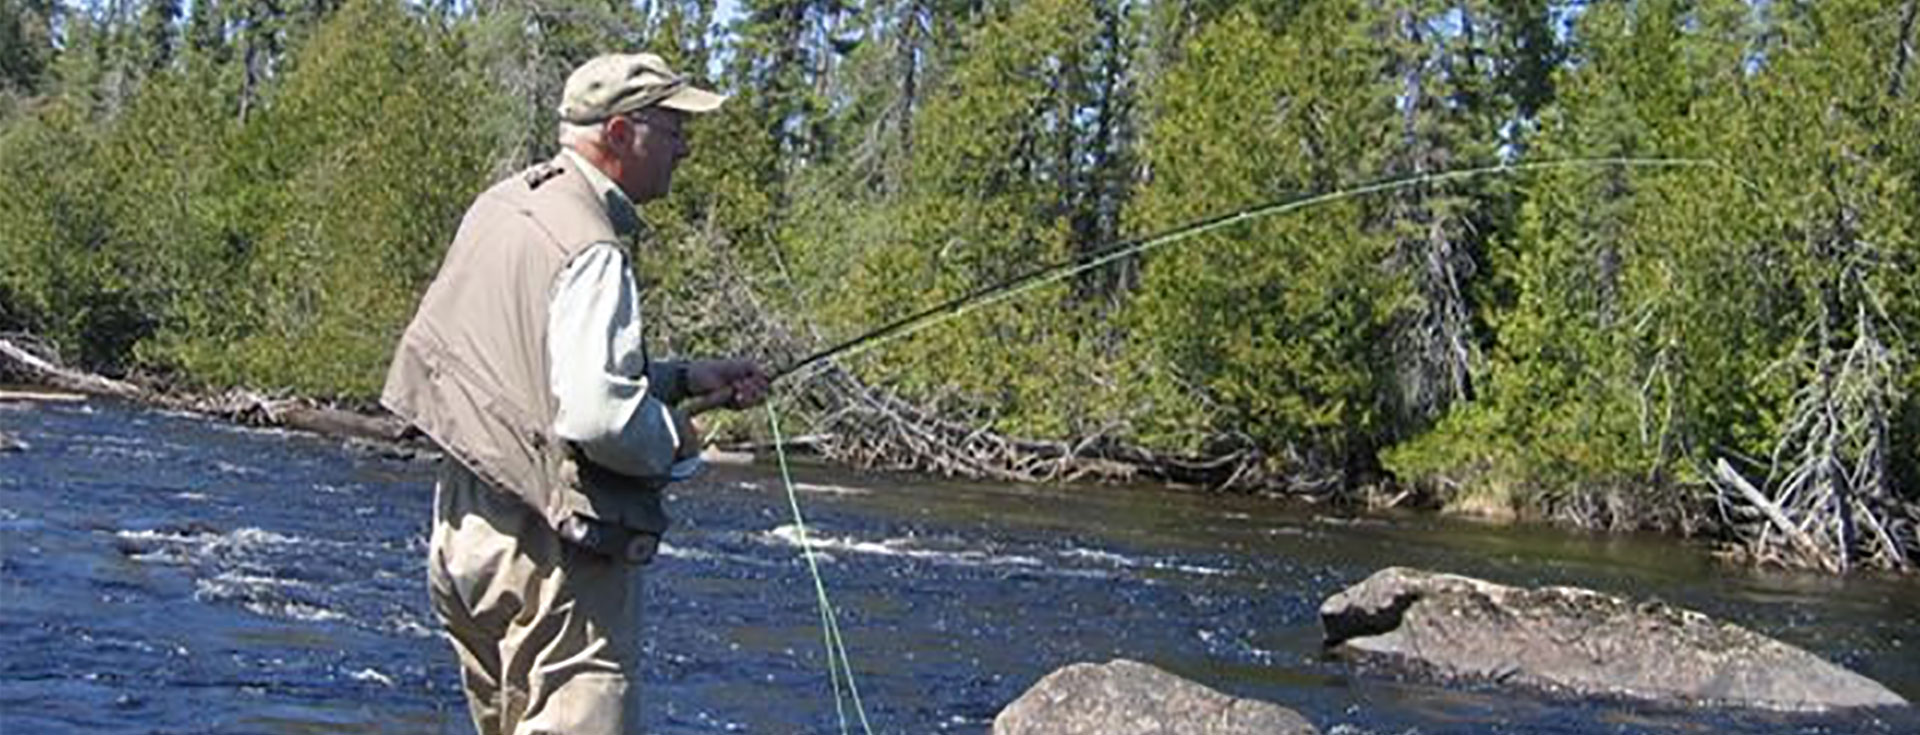 Ontario Fly Fishing on Nakina's Rivers